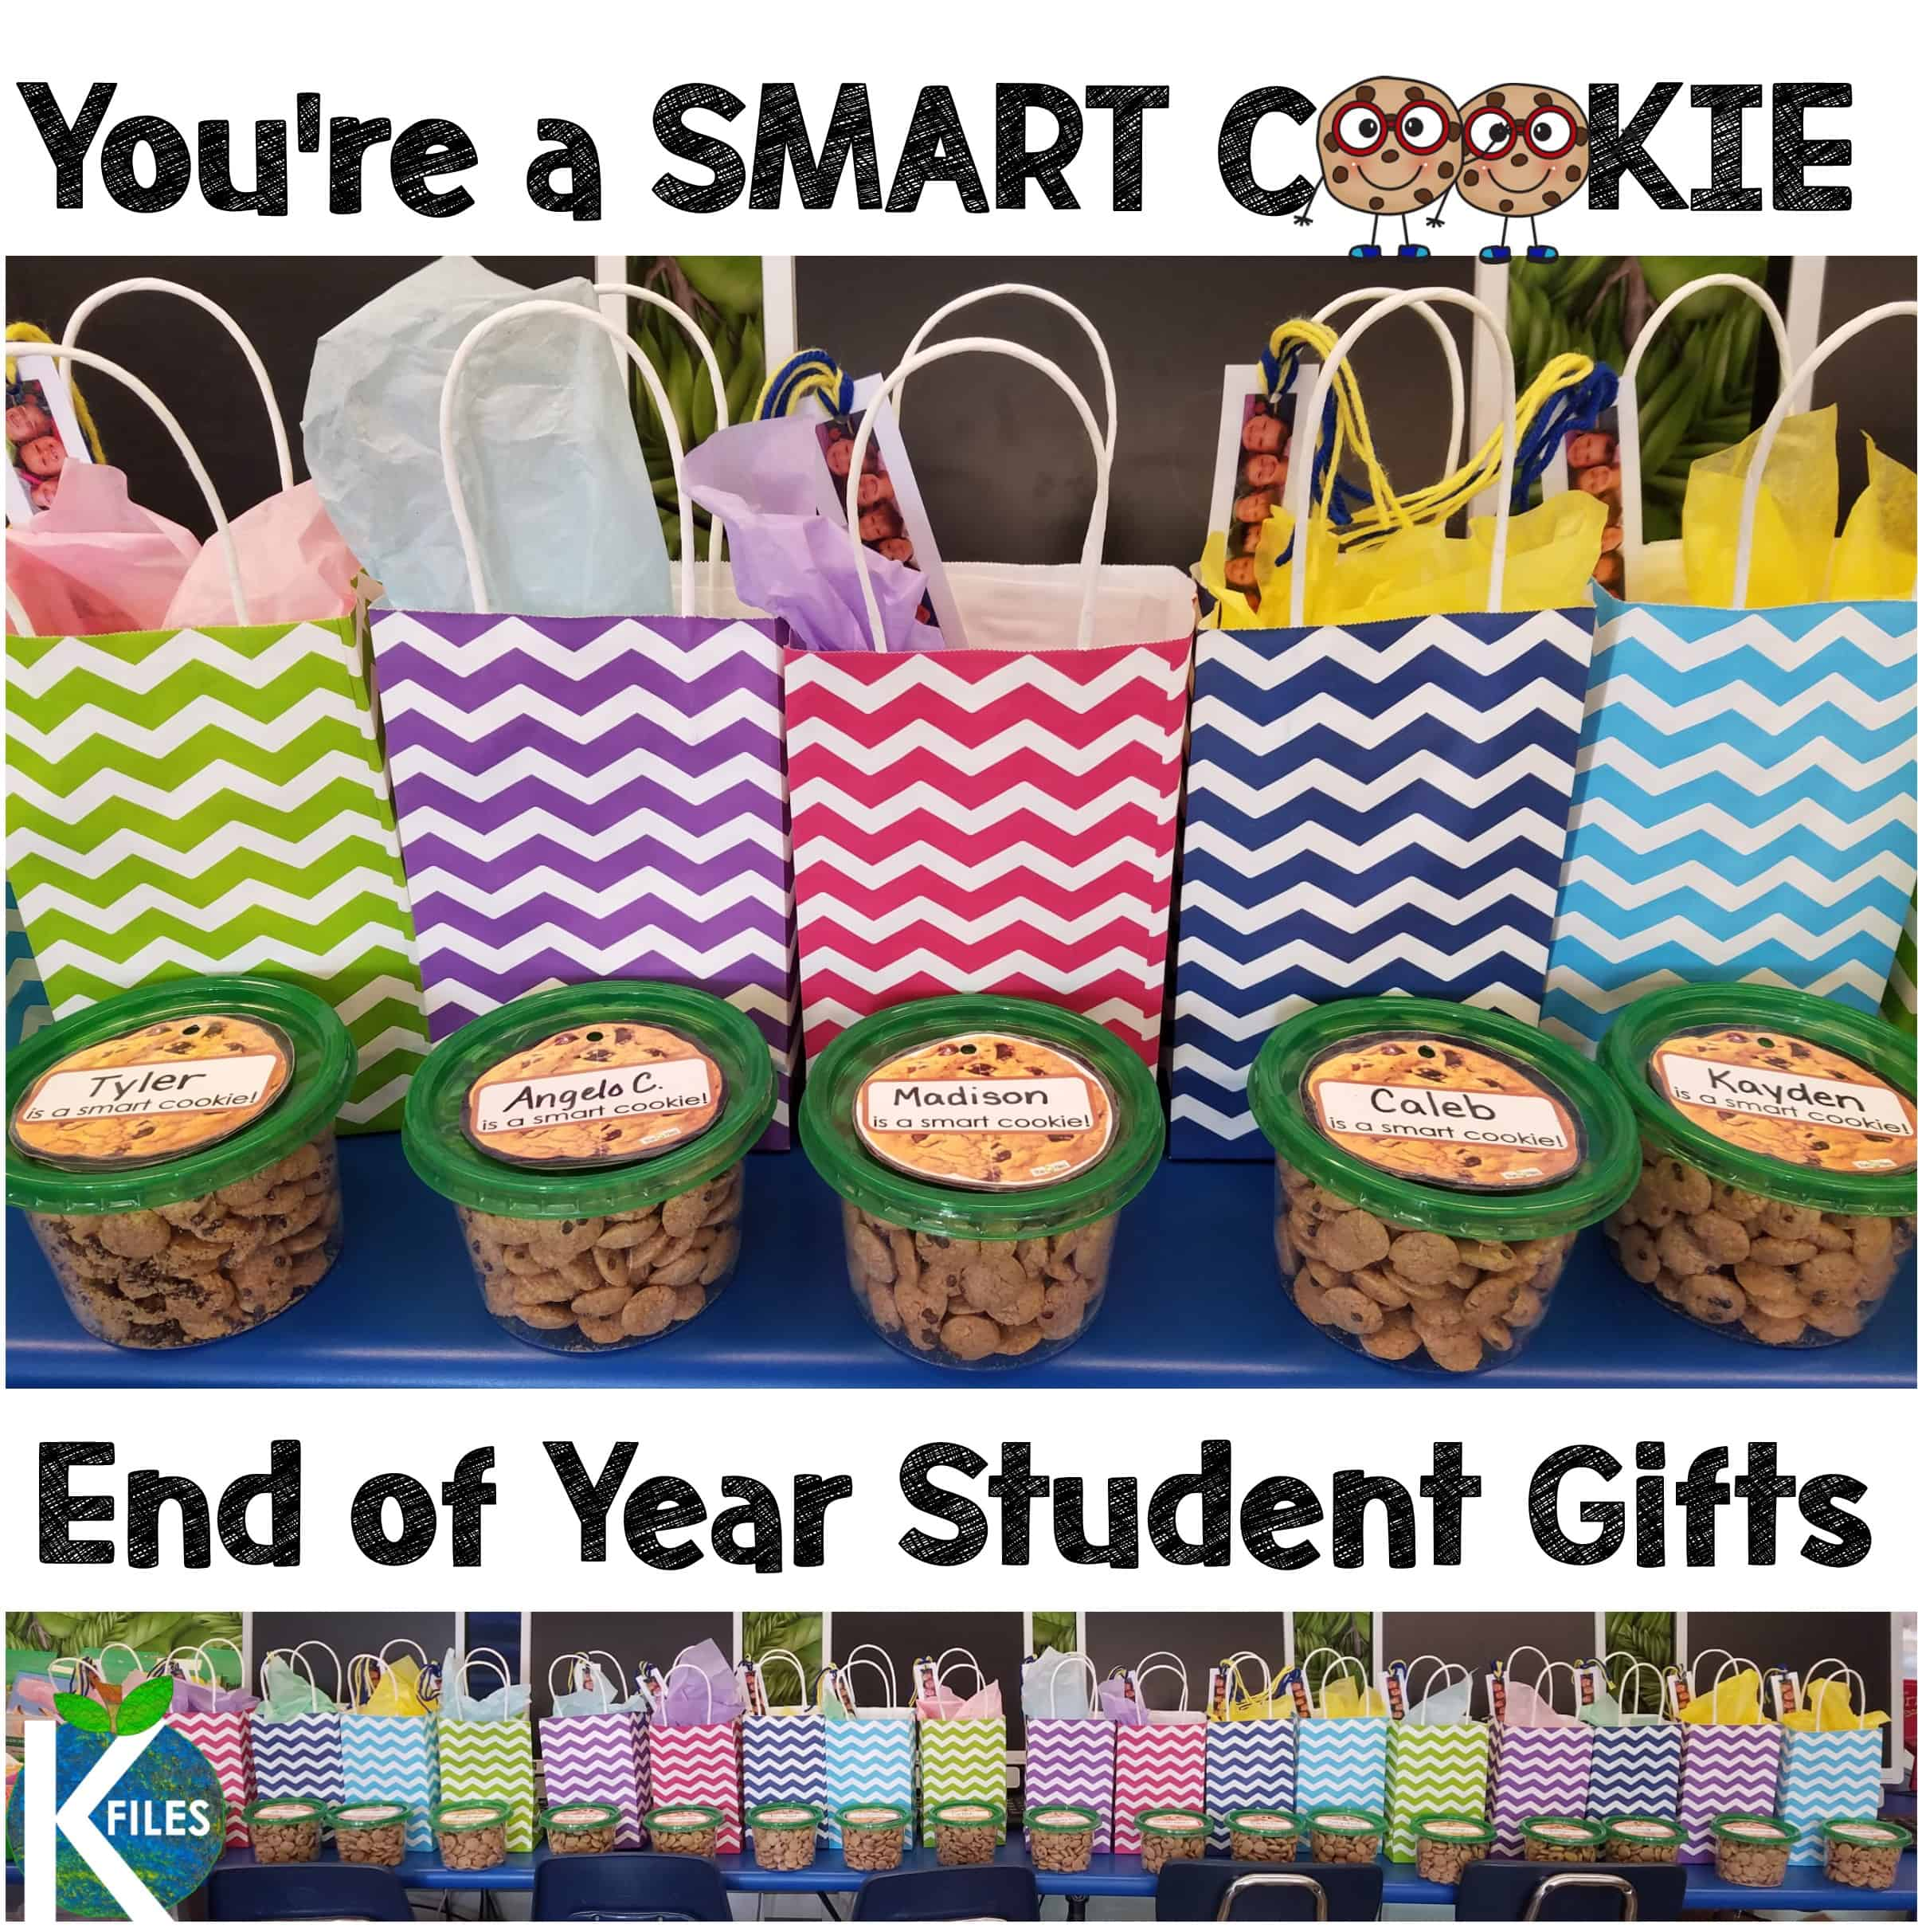 End of the Year gift for students: Your'e a smart cookie jar.